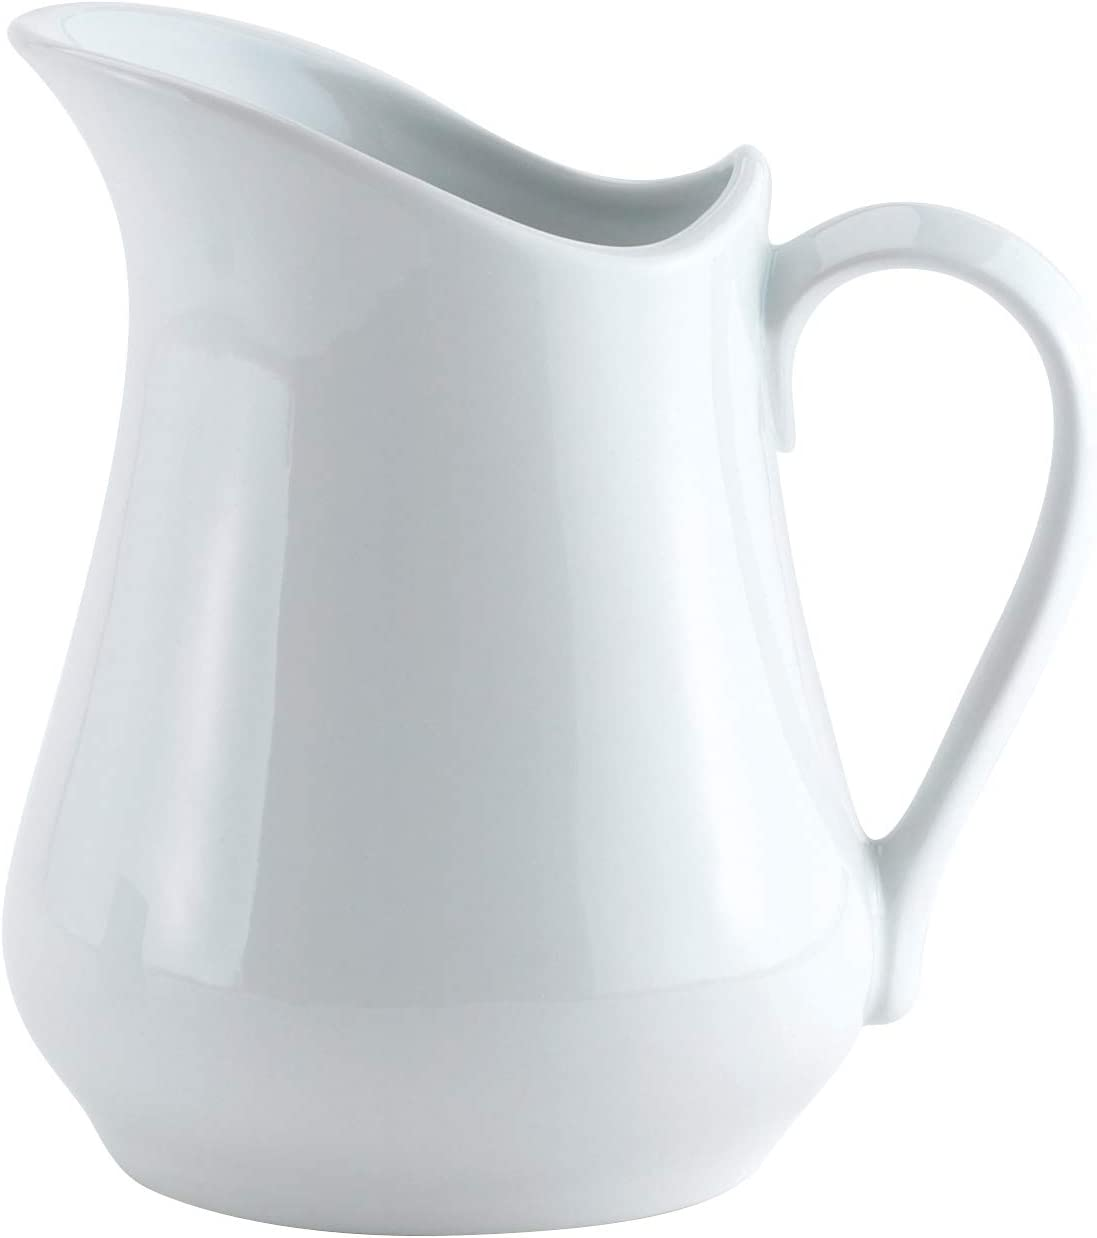 HIC Creamer Pitcher with Handle, Fine White Porcelain, 16-Ounces